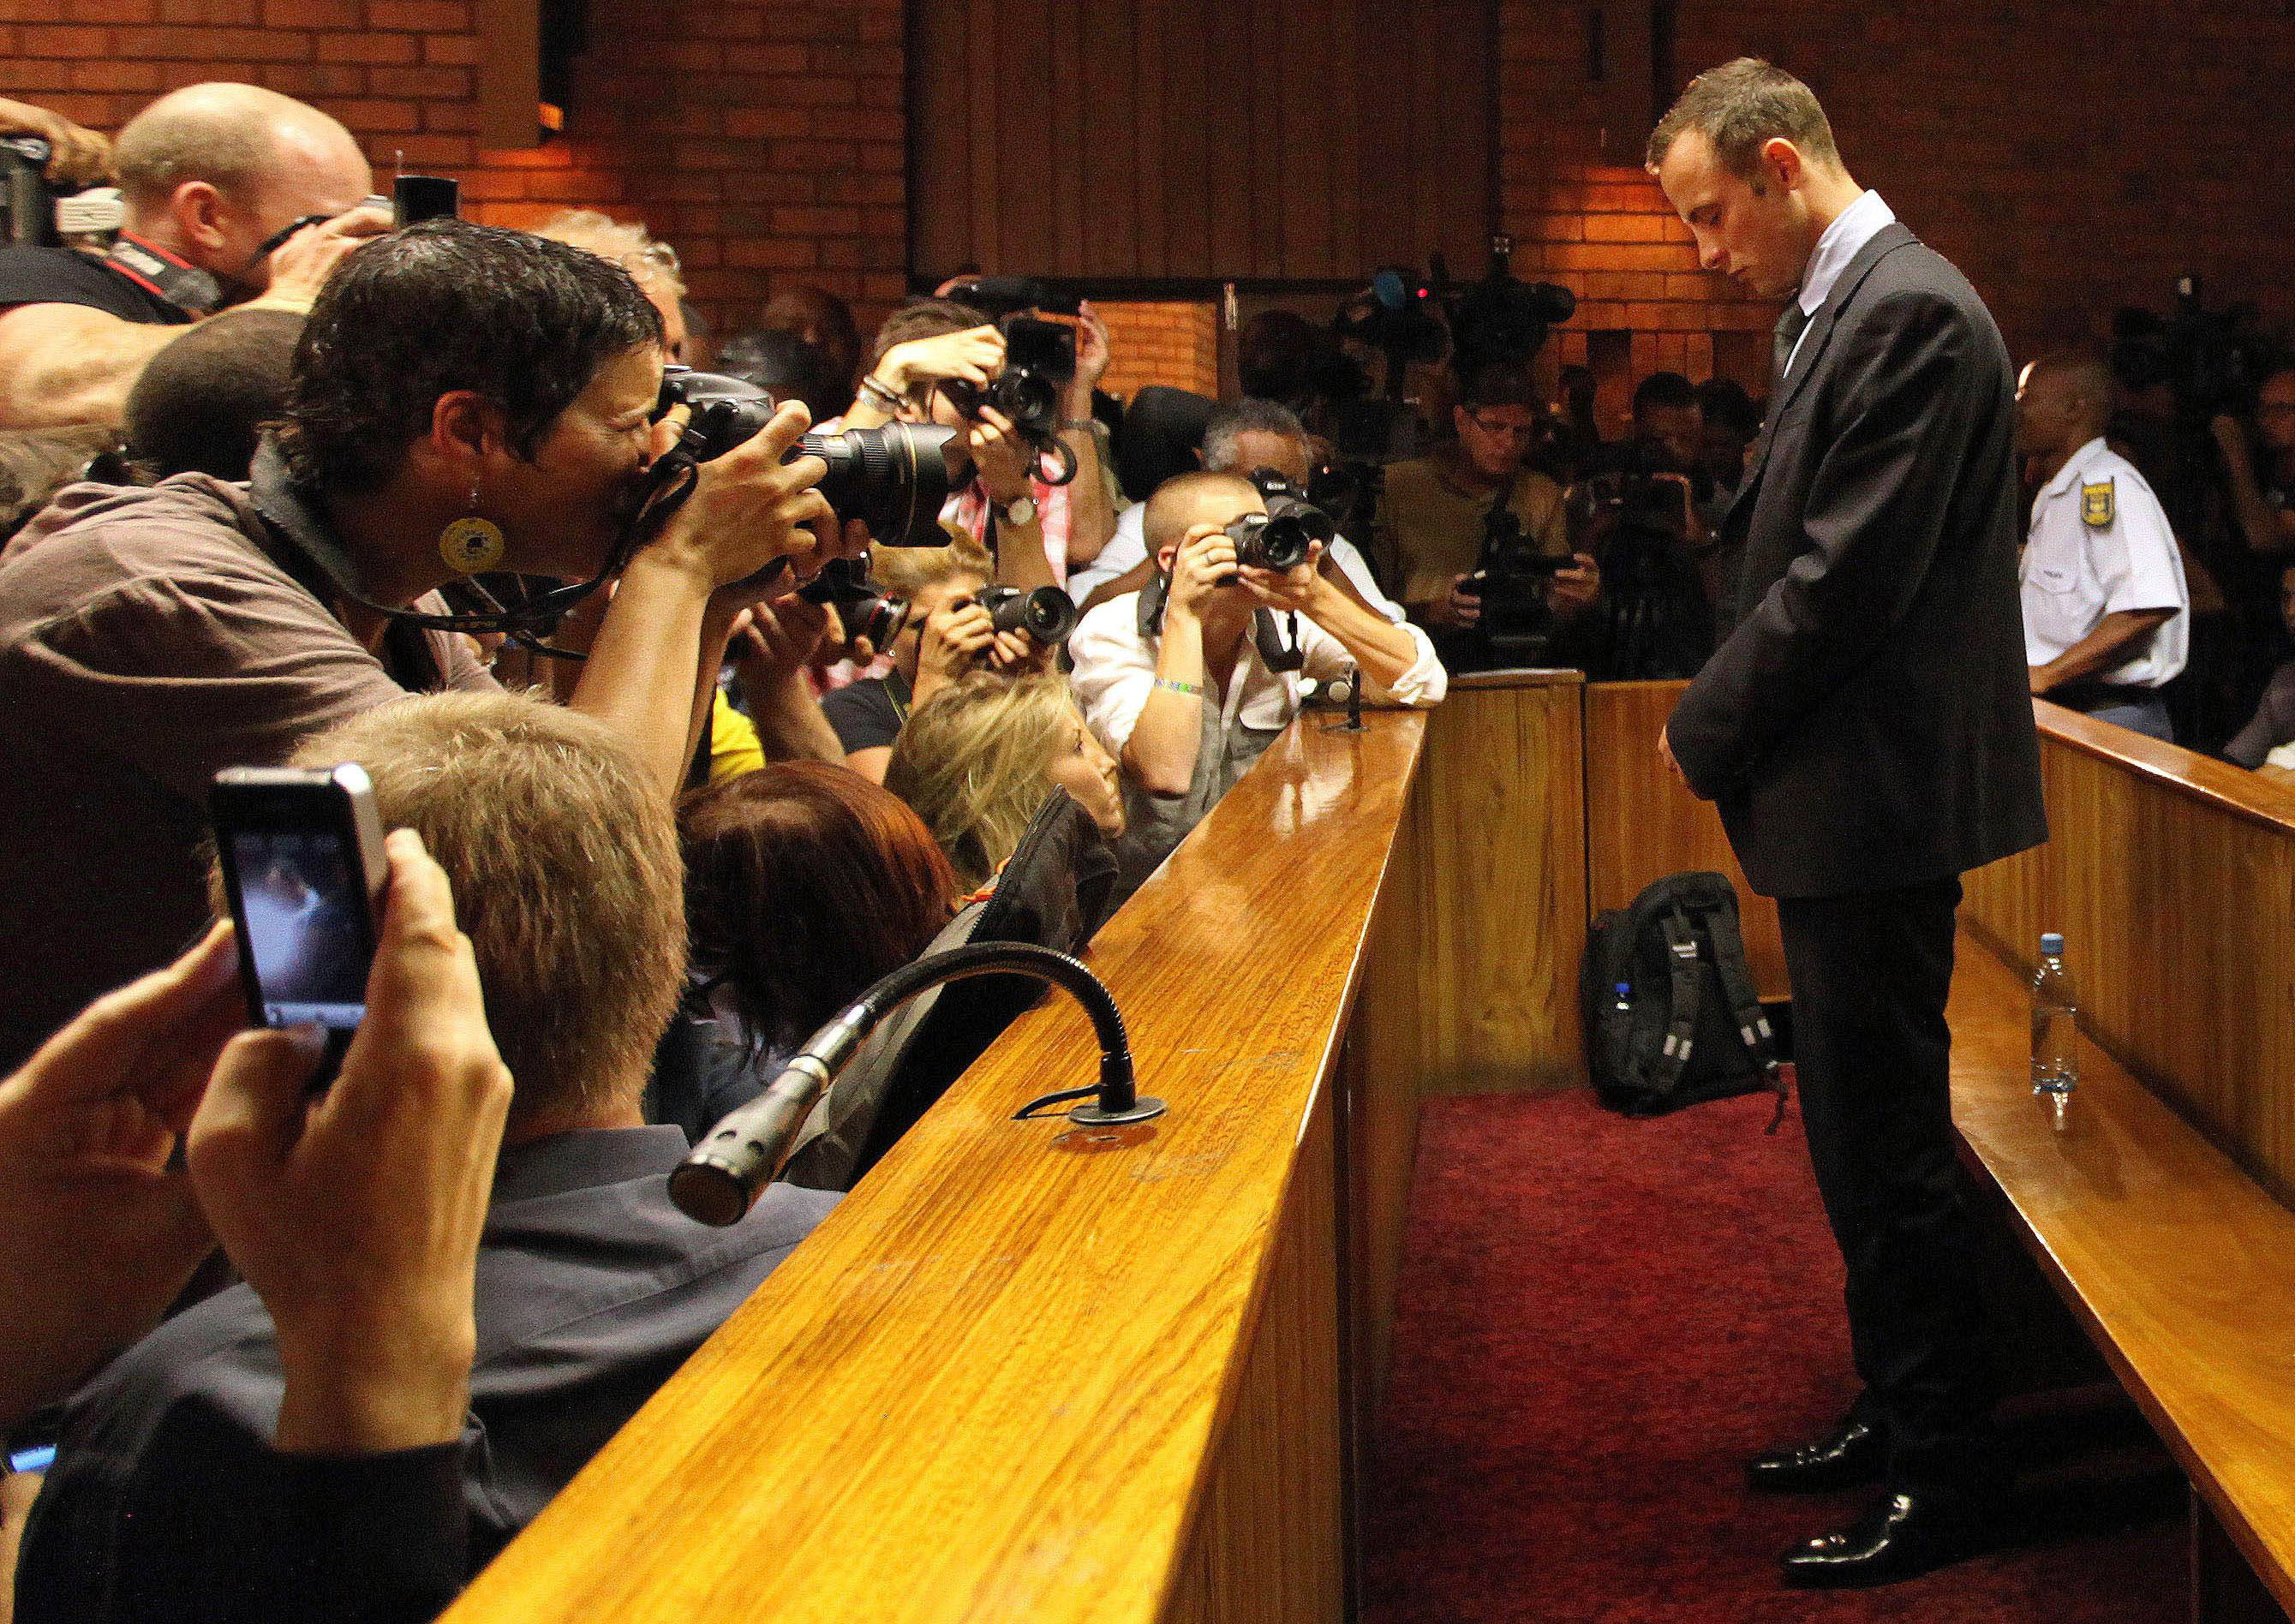 Olympic athlete Oscar Pistorius stands inside a court during his bail hearing in February 2013 at the magistrate court in Pretoria, South Africa. Pistorius will defend himself Monday against a charge of premeditated murder in the slaying of his girlfriend Reeva Steenkamp.